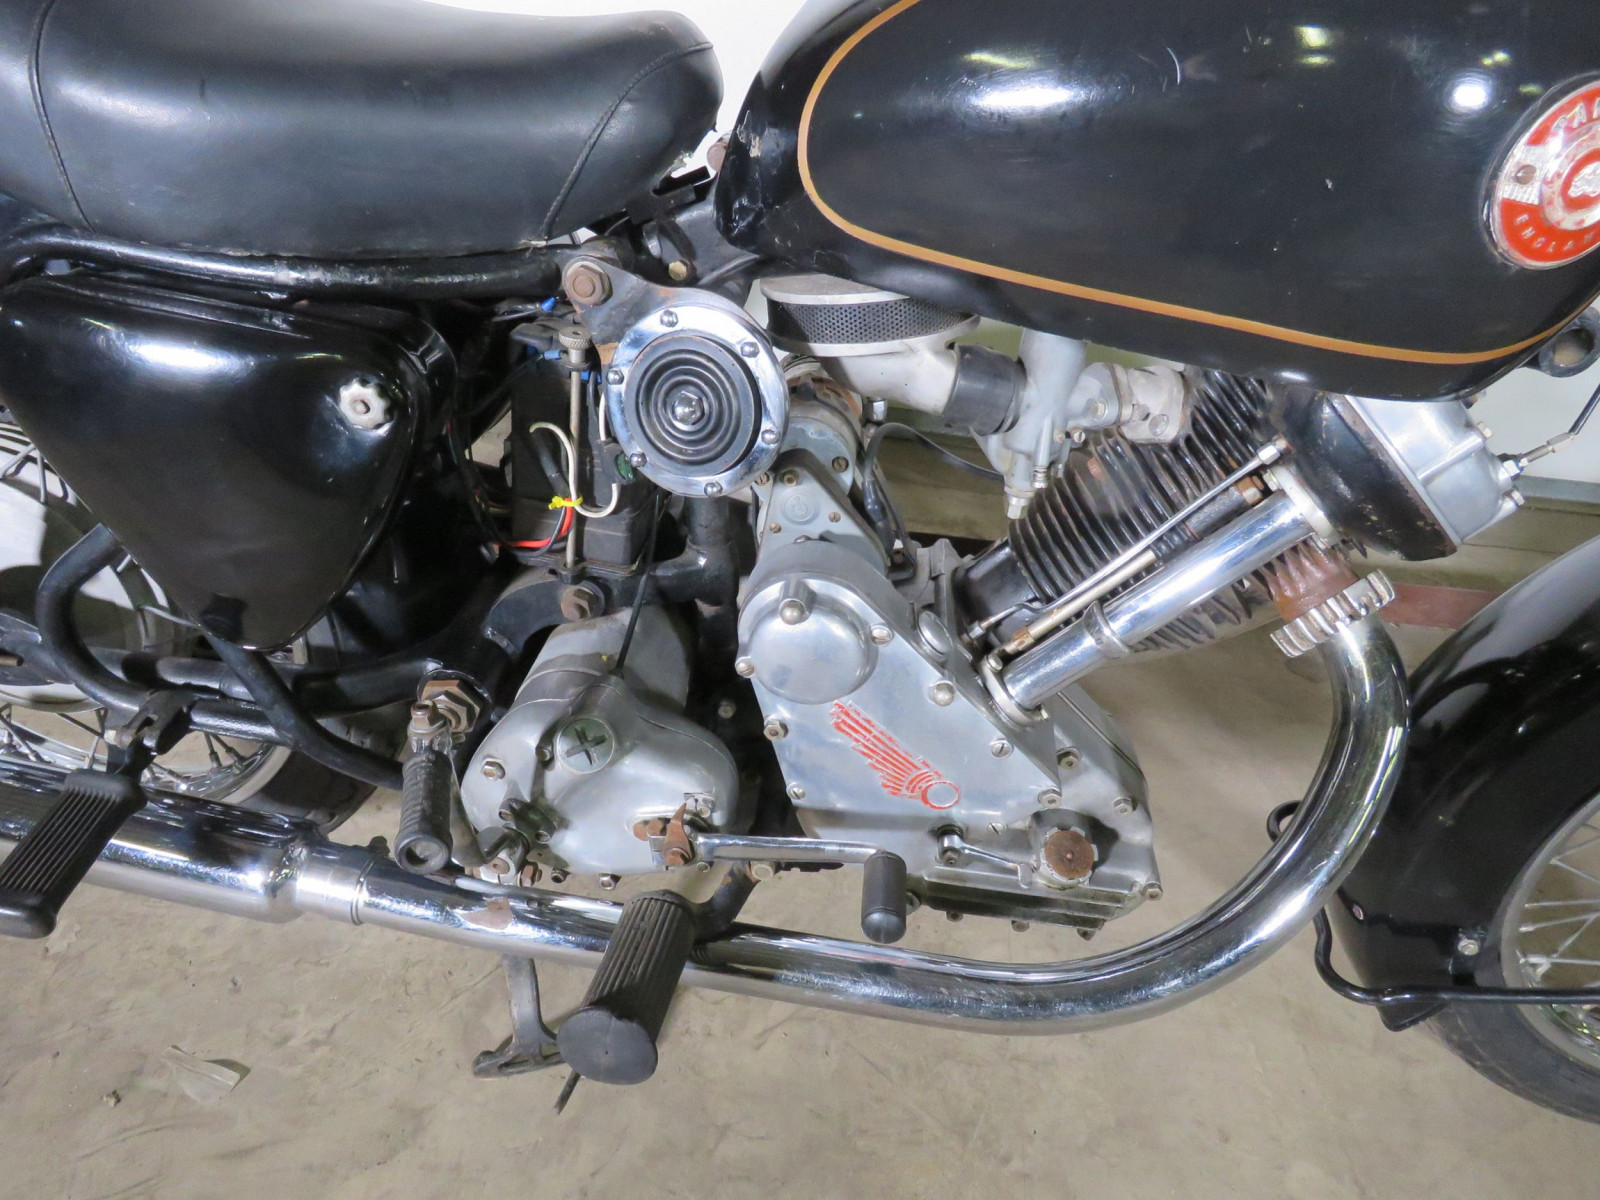 1959 Panther Model 120 Motorcycle - Image 9